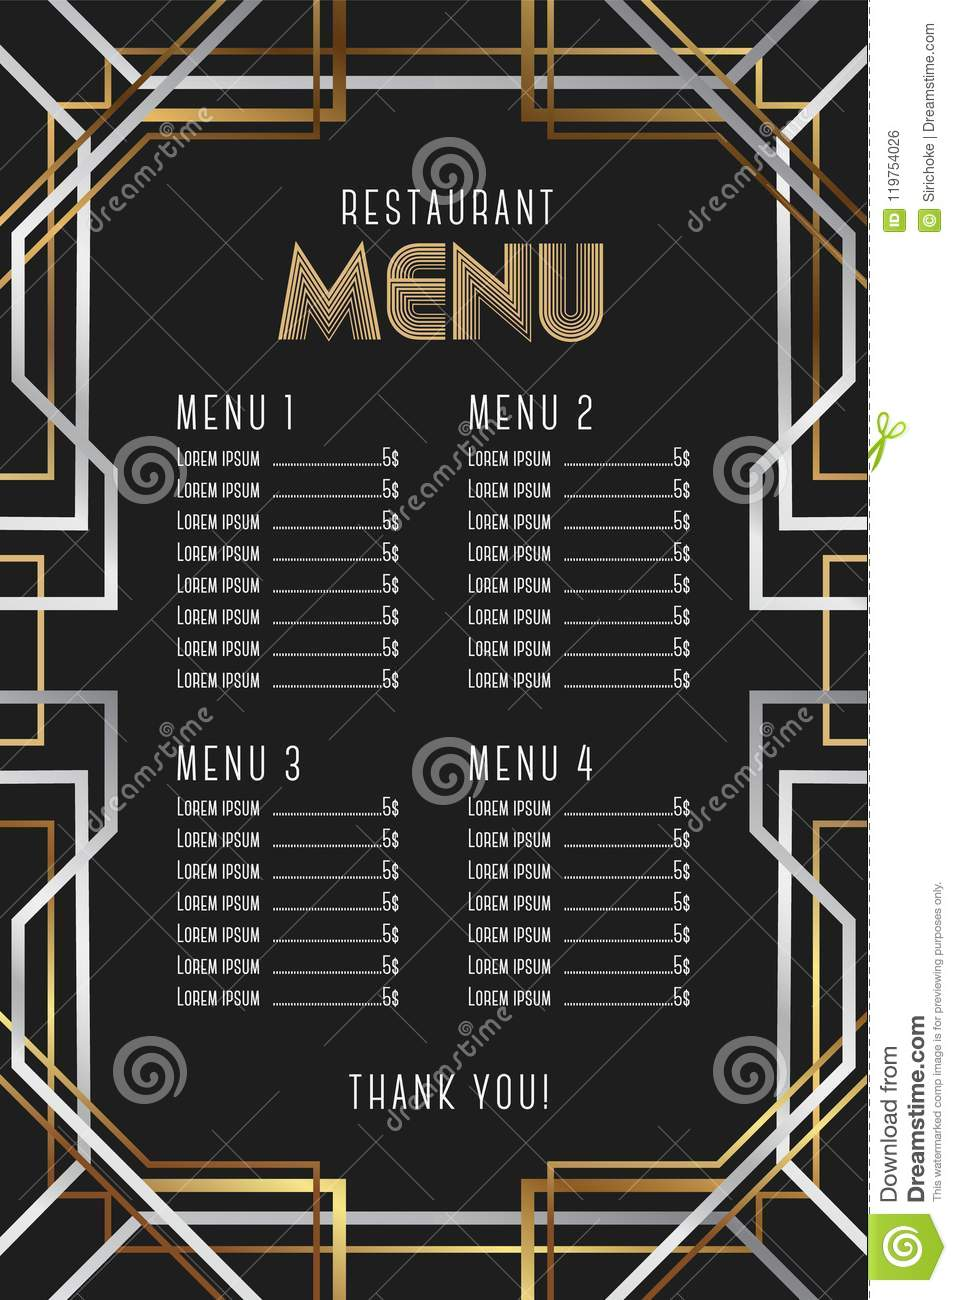 Restaurant Menu Template Luxury Vintage Artdeco Frame Design Stock Schematic